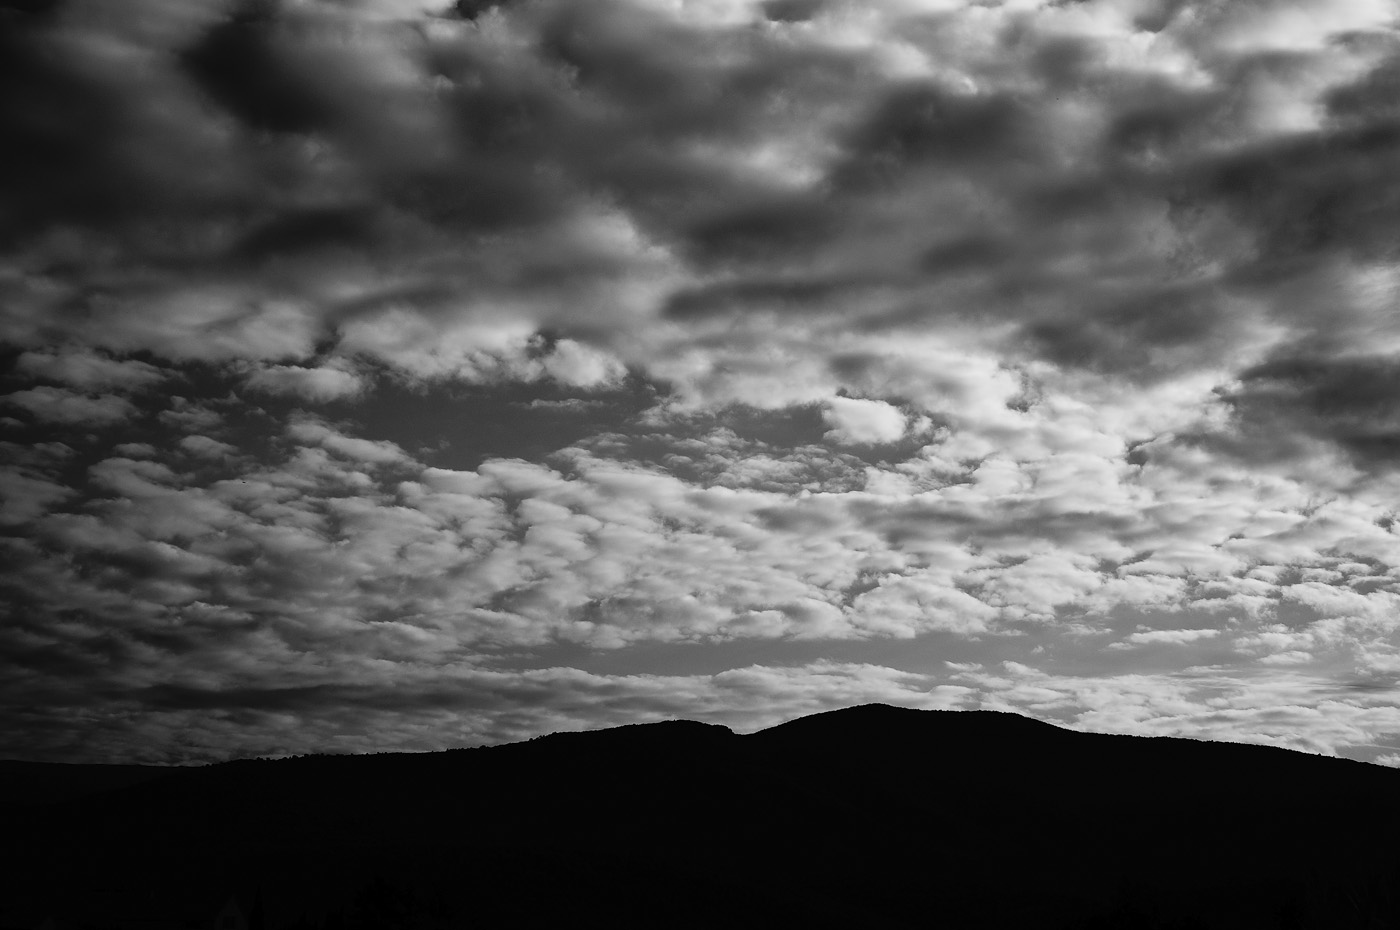 Clouds over a distant hill in black and white, picture made with a Sony NEX-5N